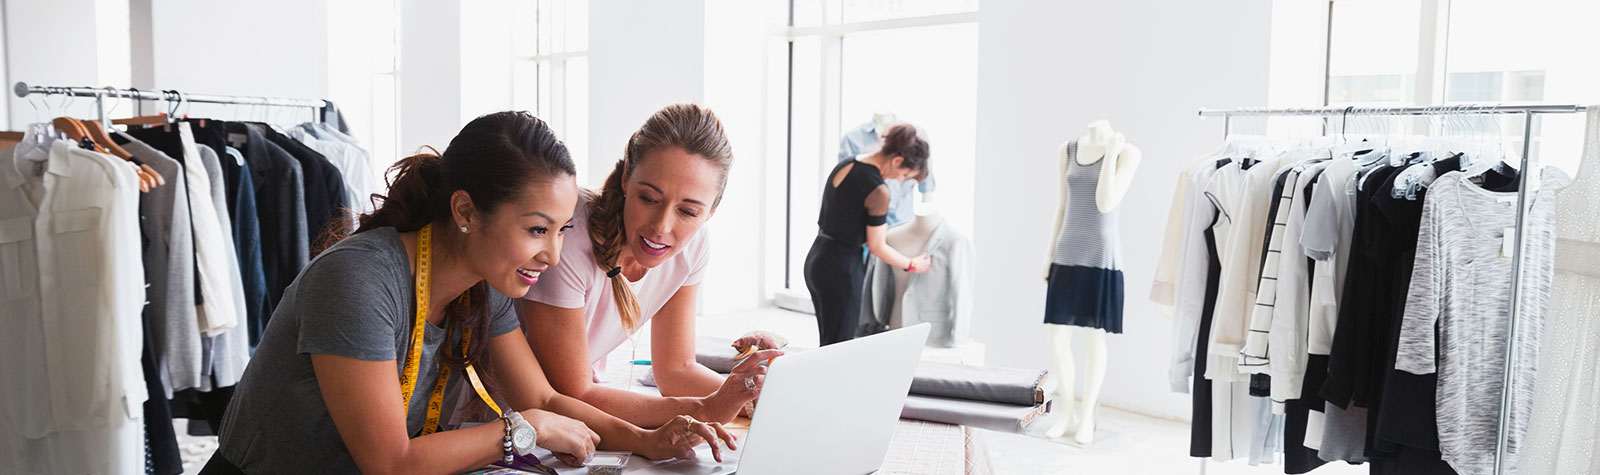 Women in a retail store checking inventory on a computer